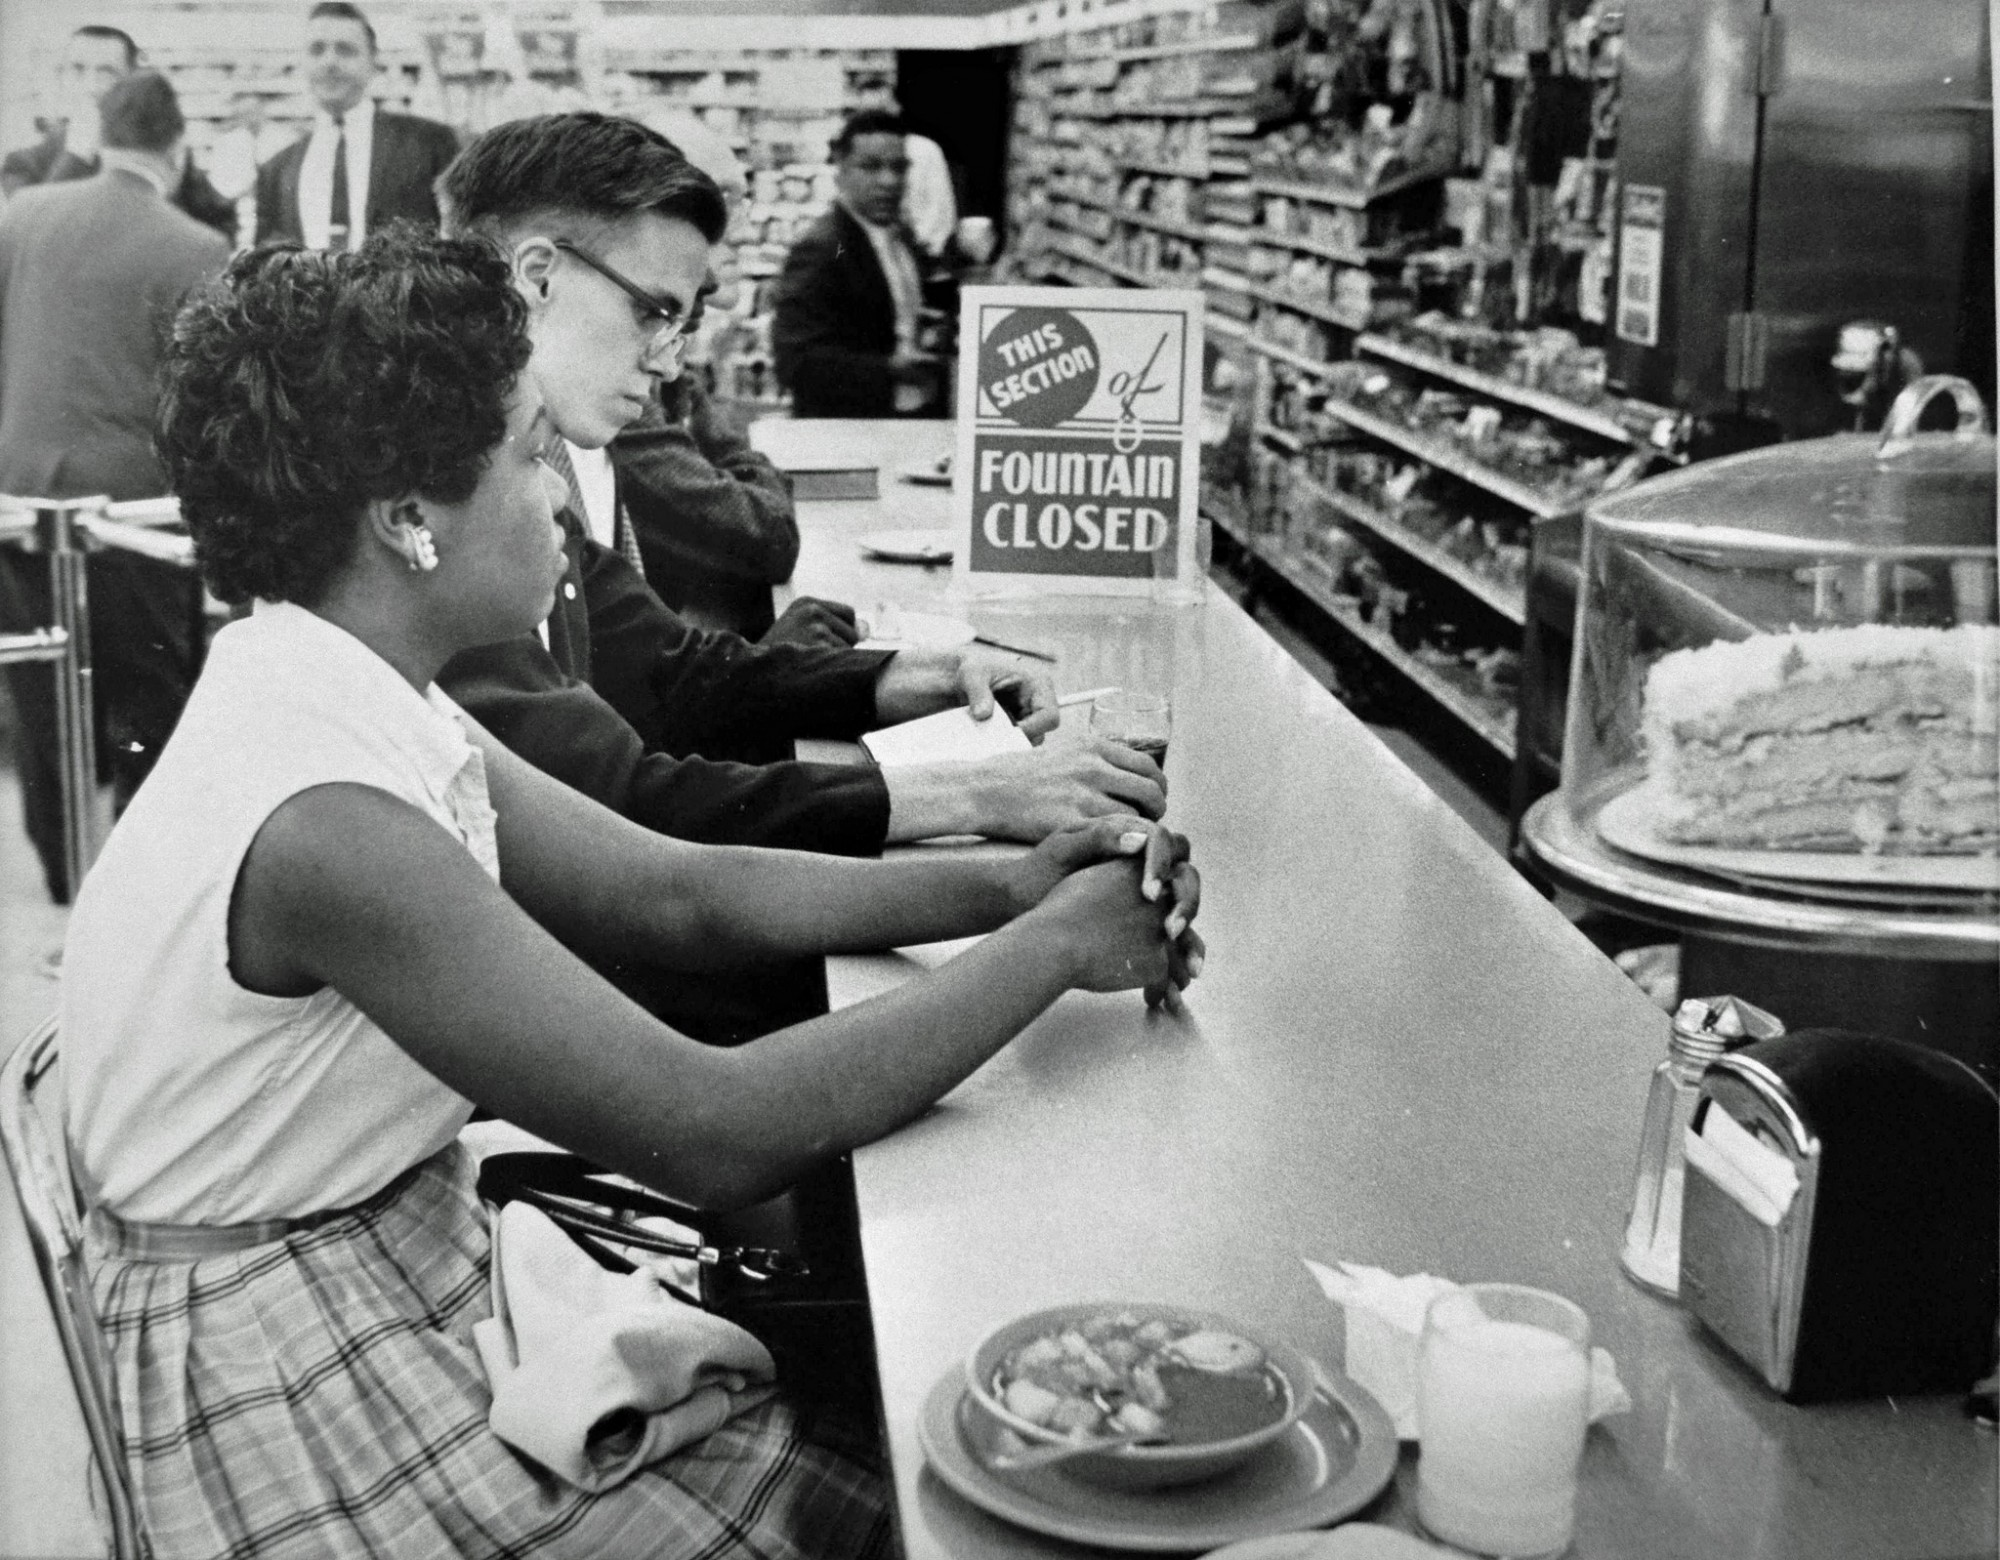 Photo by Gus Chinn. Courtesy of the DC Public Library Washington Star Collection © Washington Post